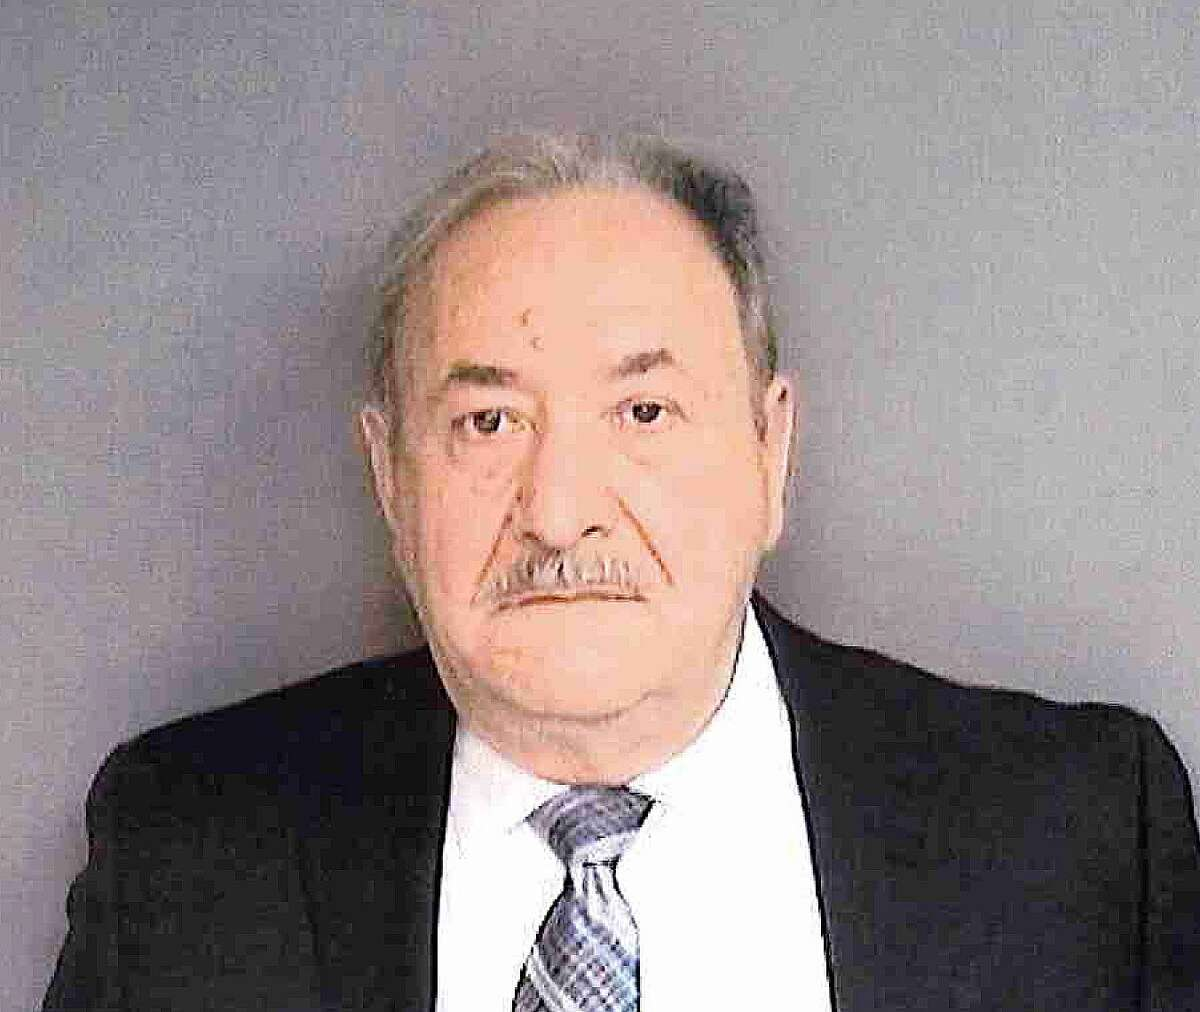 John Mallozzi charged with 14 counts each of filing false statements and second-degree forgery in an identity-theft scheme involving absentee ballots stemming from the 2015 municipal election.